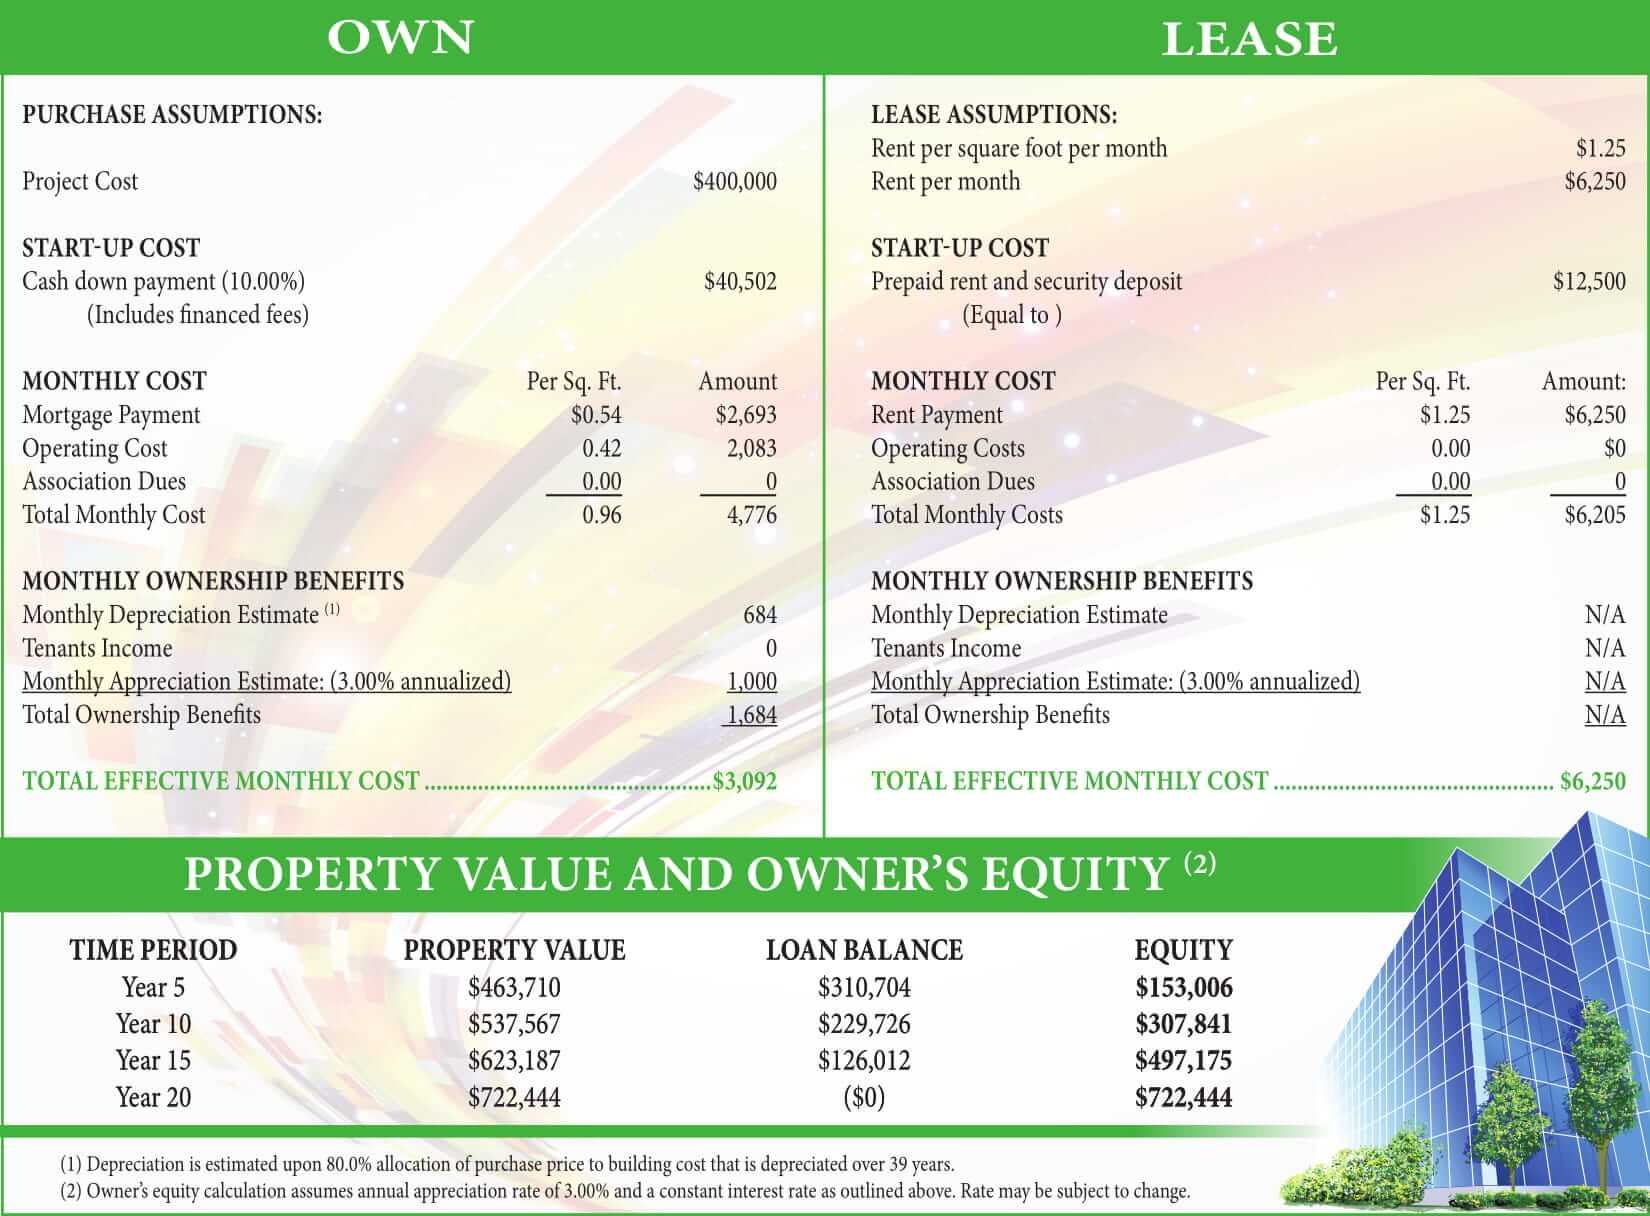 Commercial Real Estate: Owning and Leasing